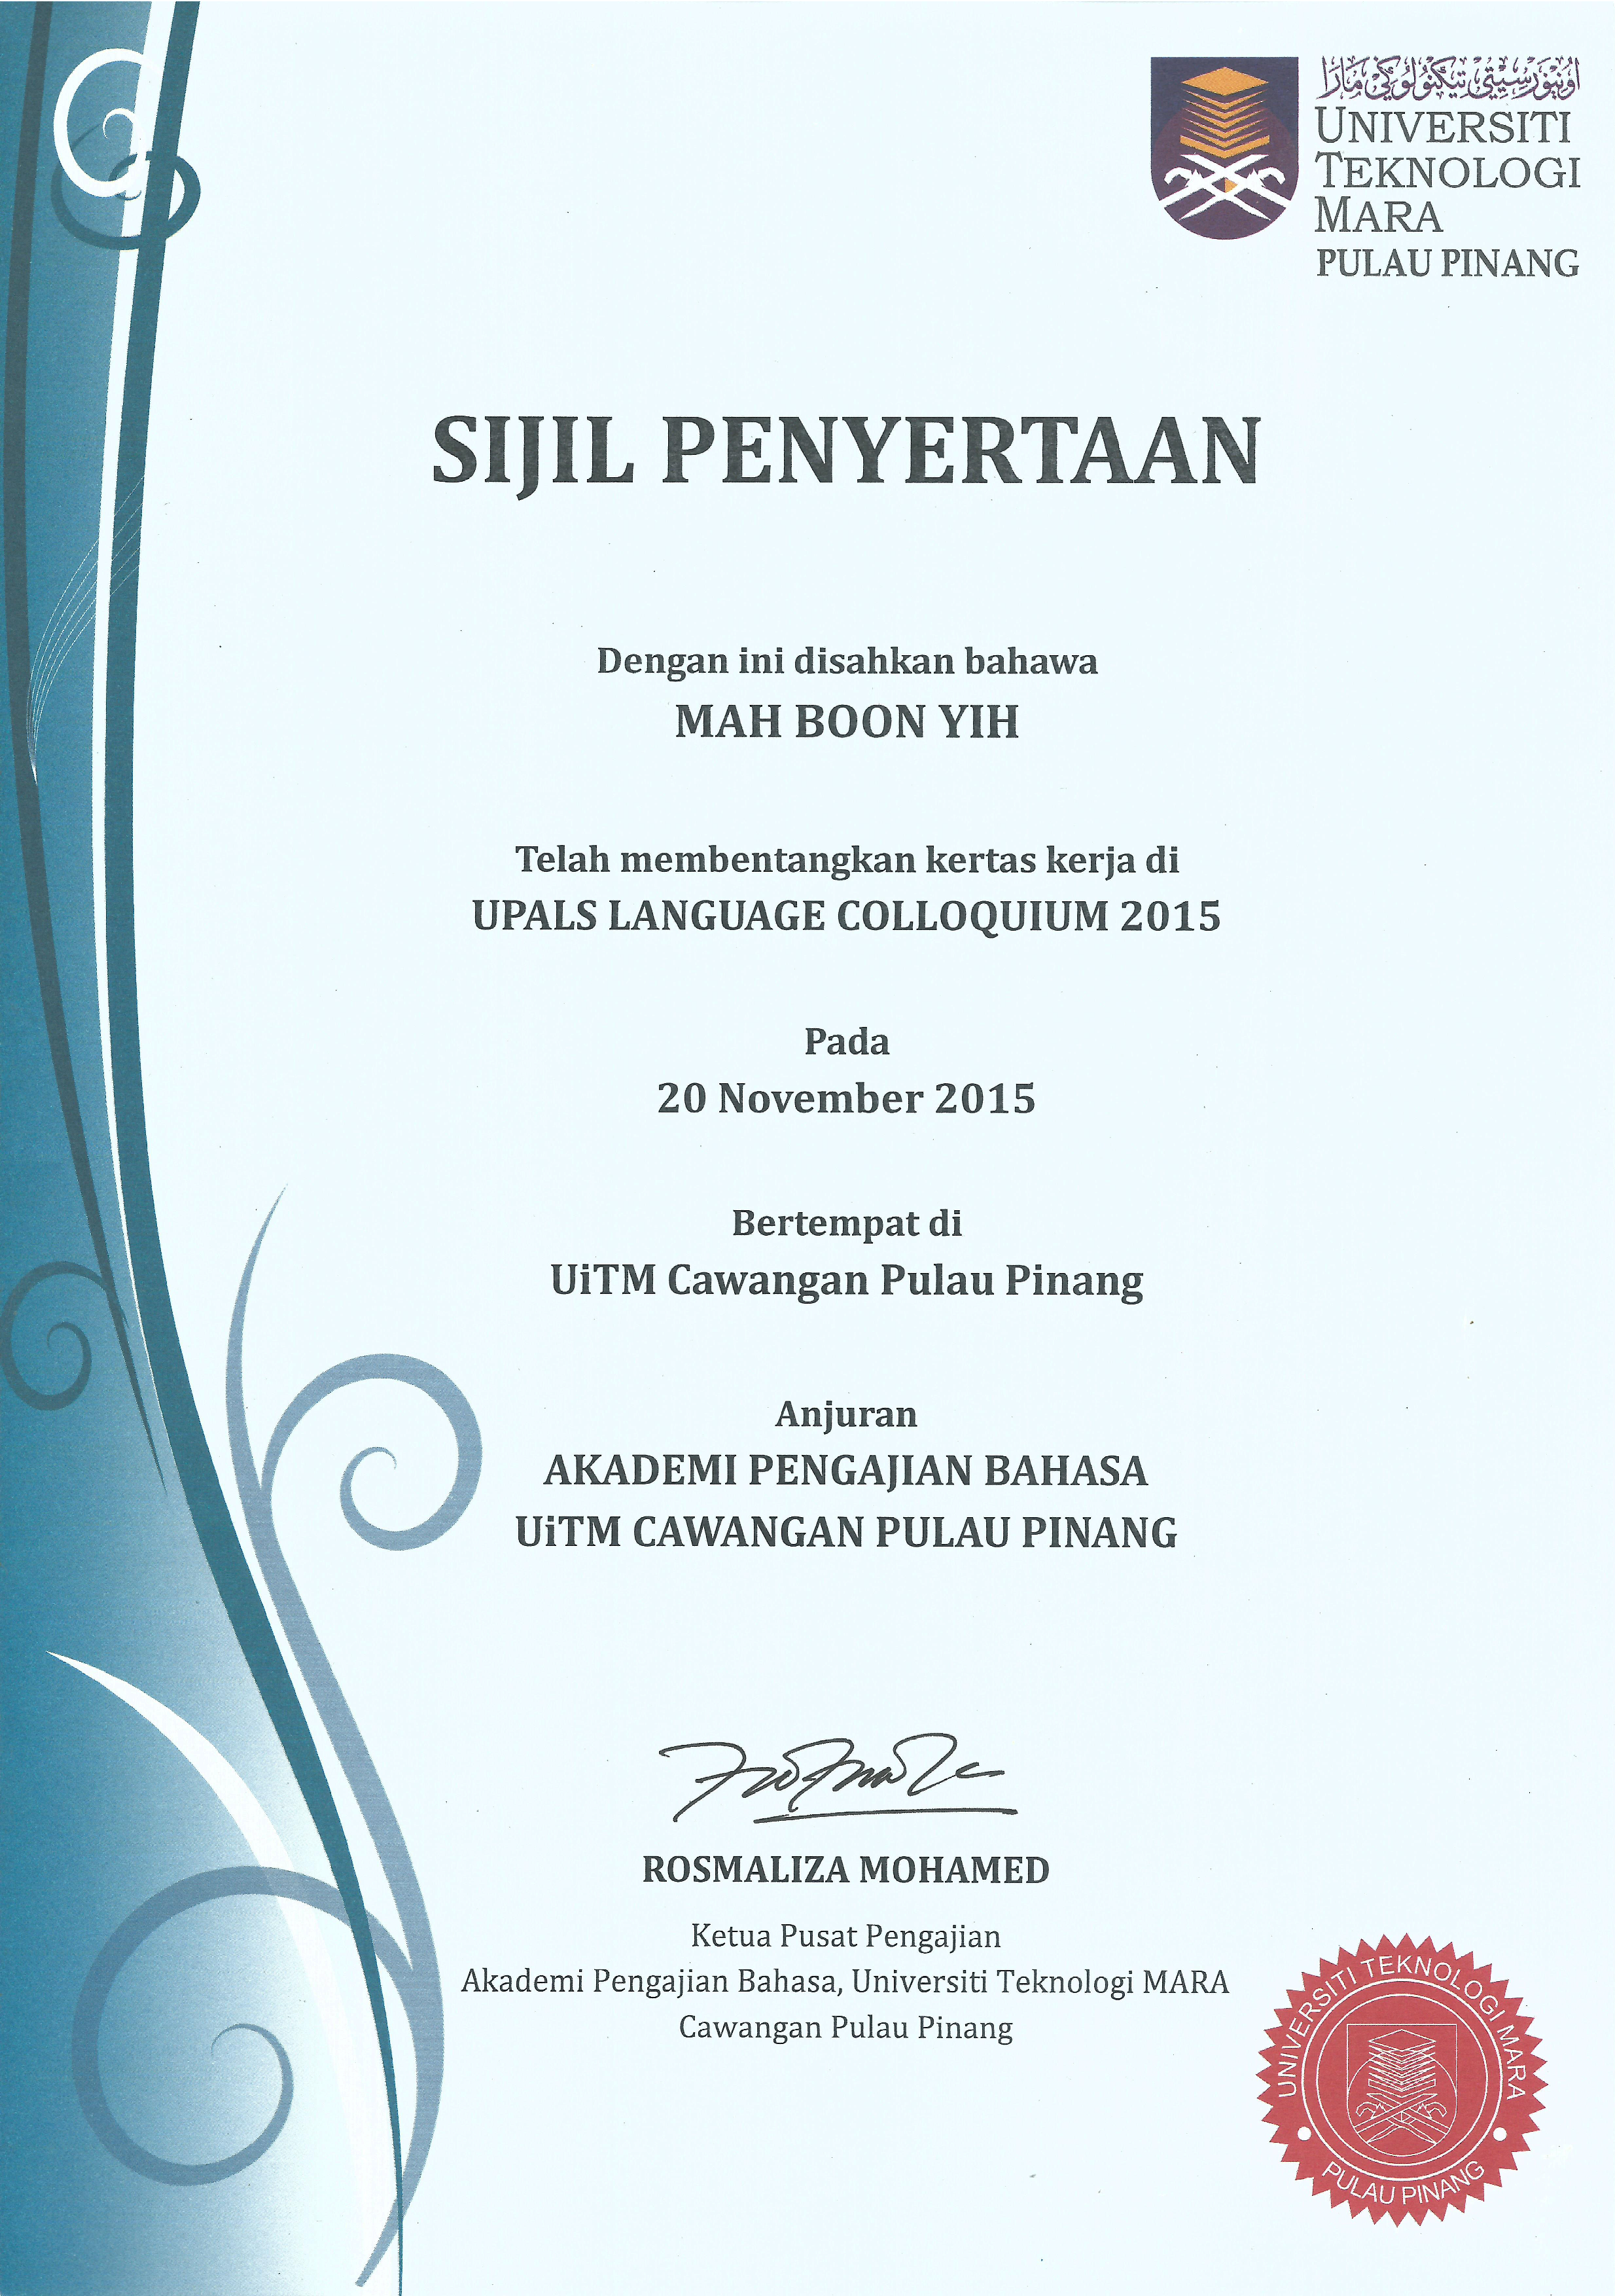 Upals language colloquium 2015 certificate of participation upals language colloquium 2015 certificate of participation yelopaper Choice Image